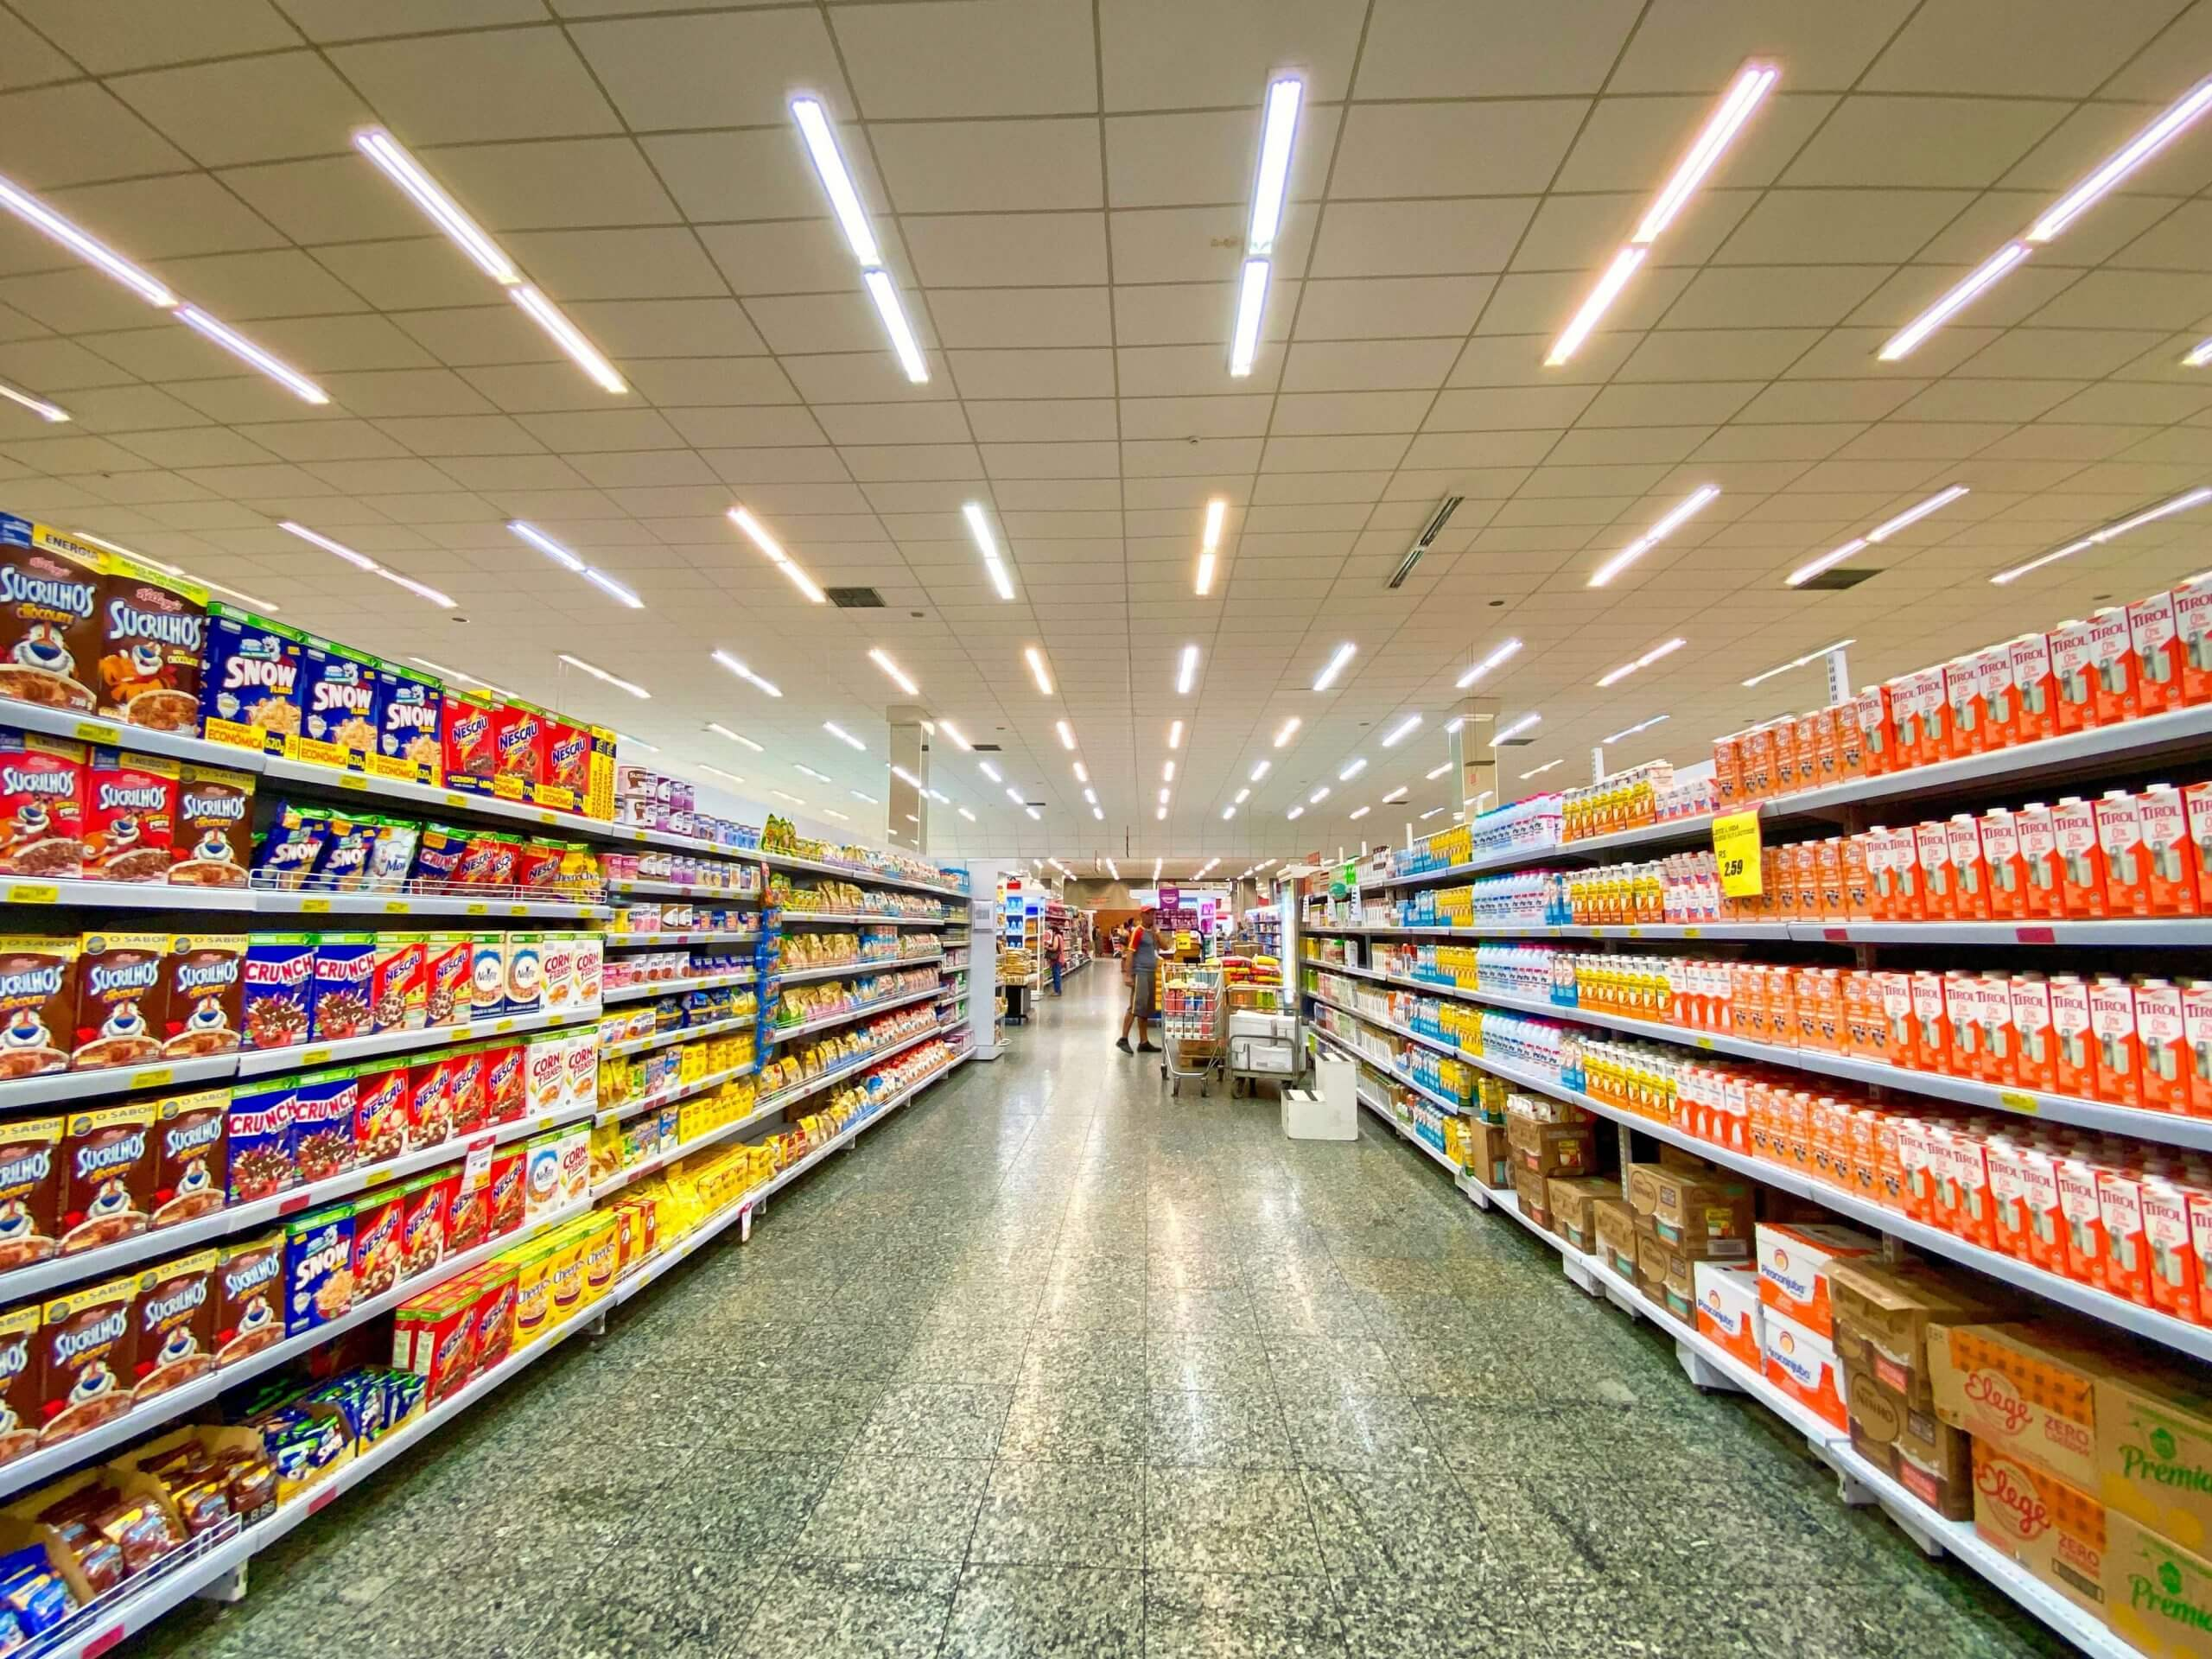 grocery store aisle after a vinyl composition tile cleaning in atlanta ga